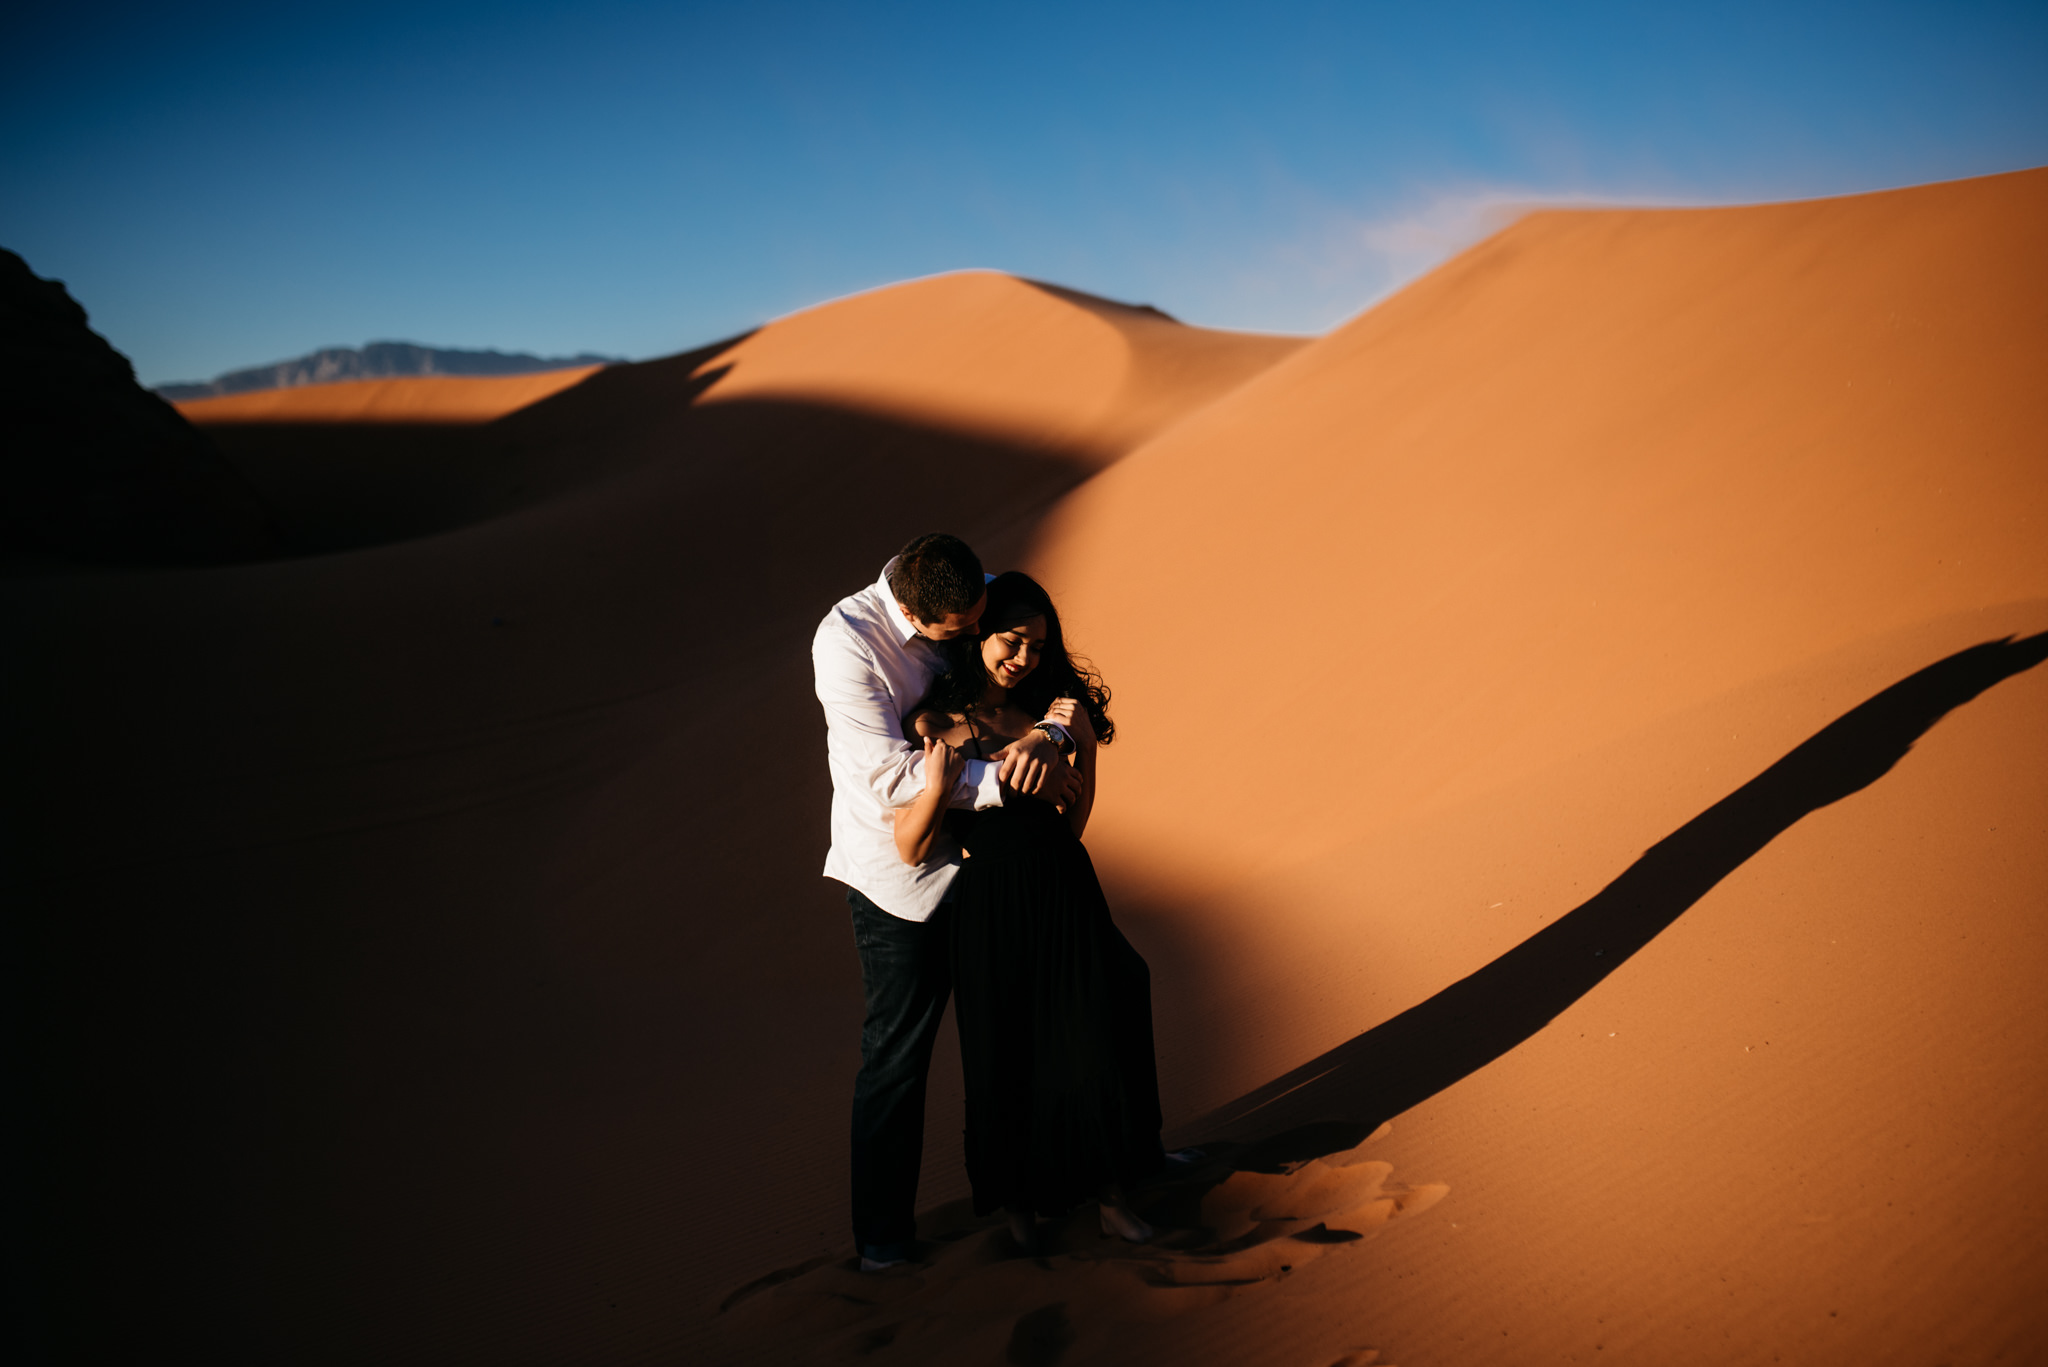 twyla jones photography | couples engagement session sand dunes utah sunset stars-21.jpg